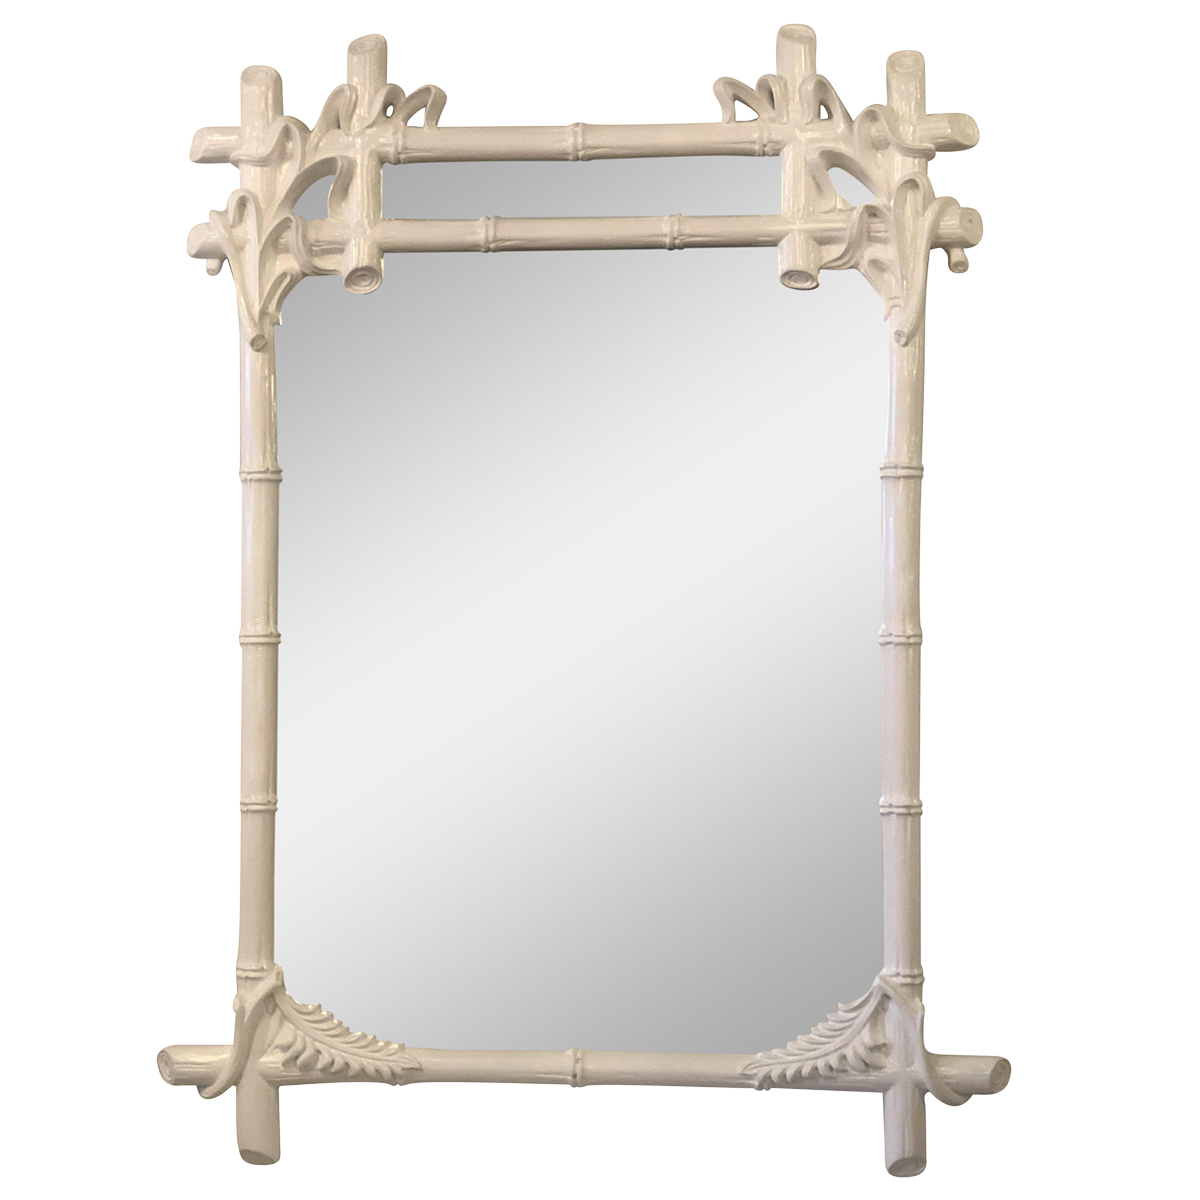 bamboo-white-lacquer.jpg